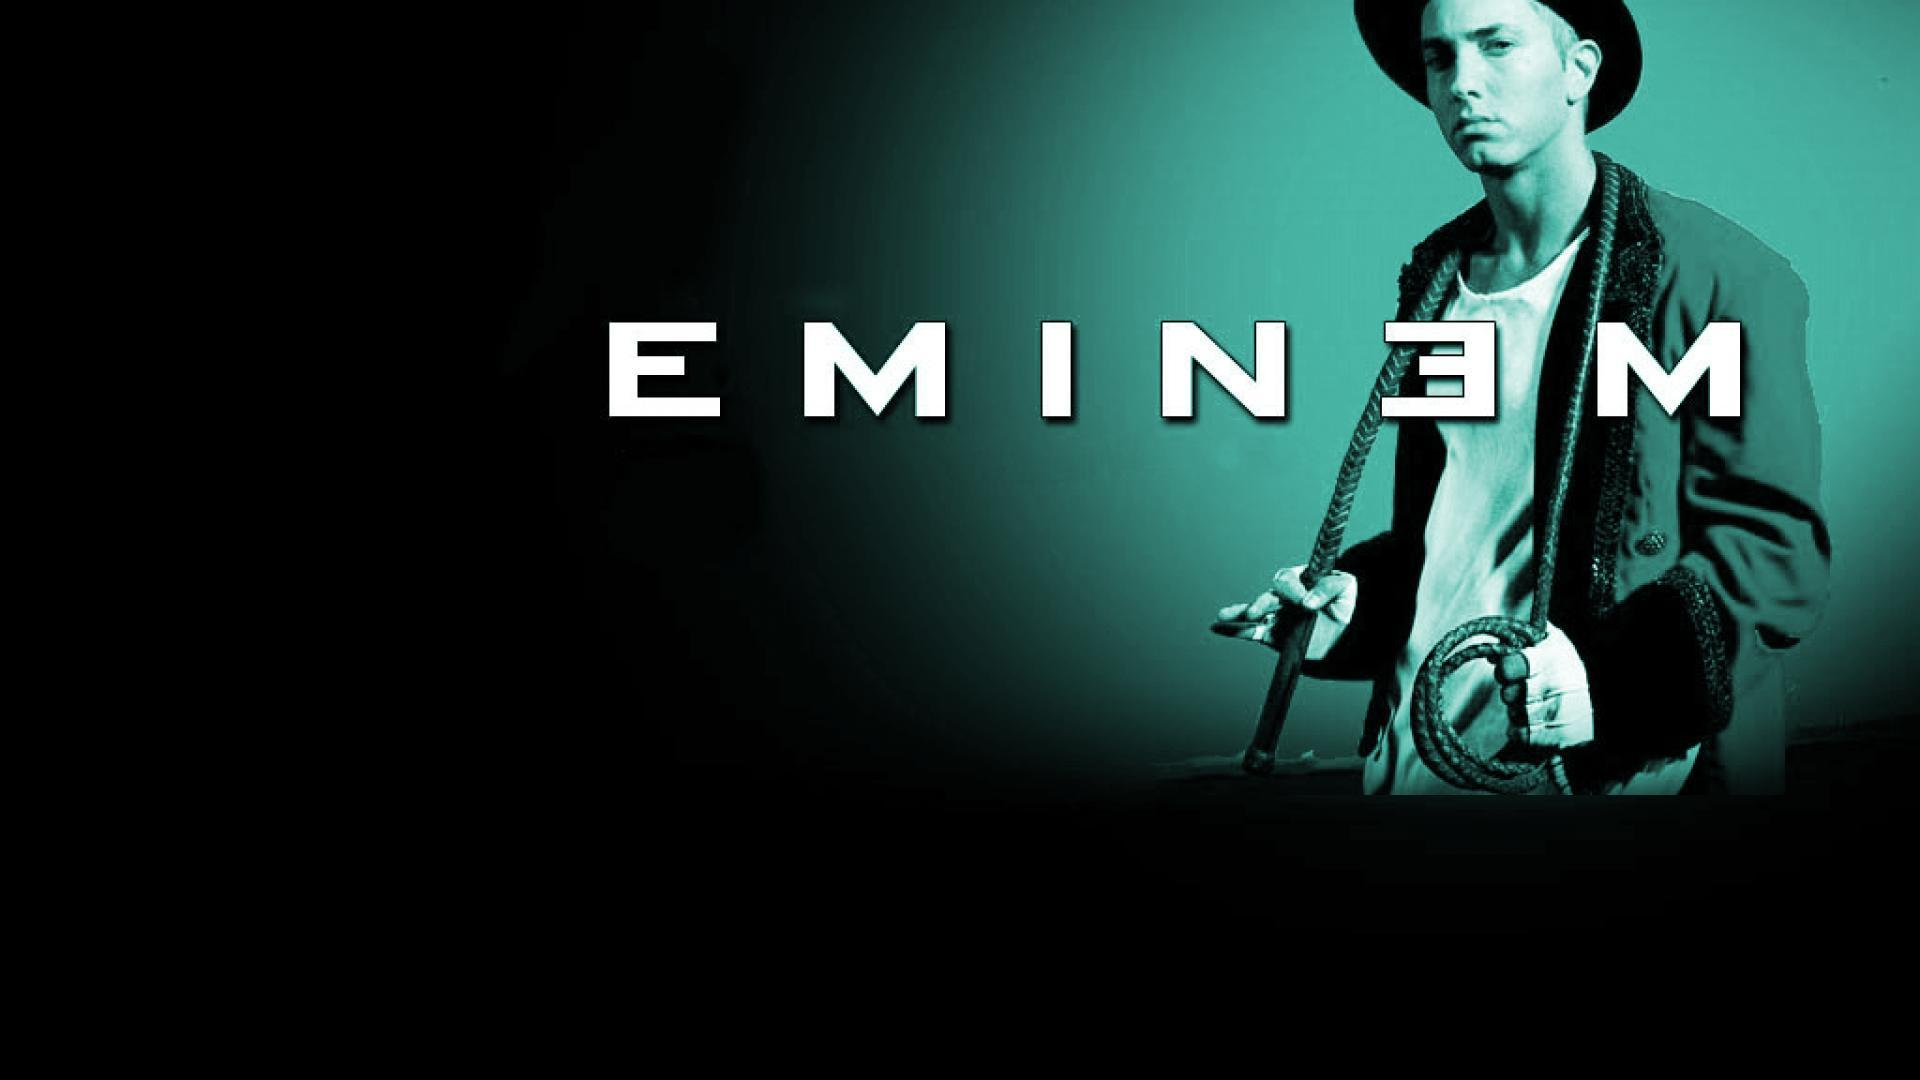 eminem desktop wallpaper,desktop wallpaper